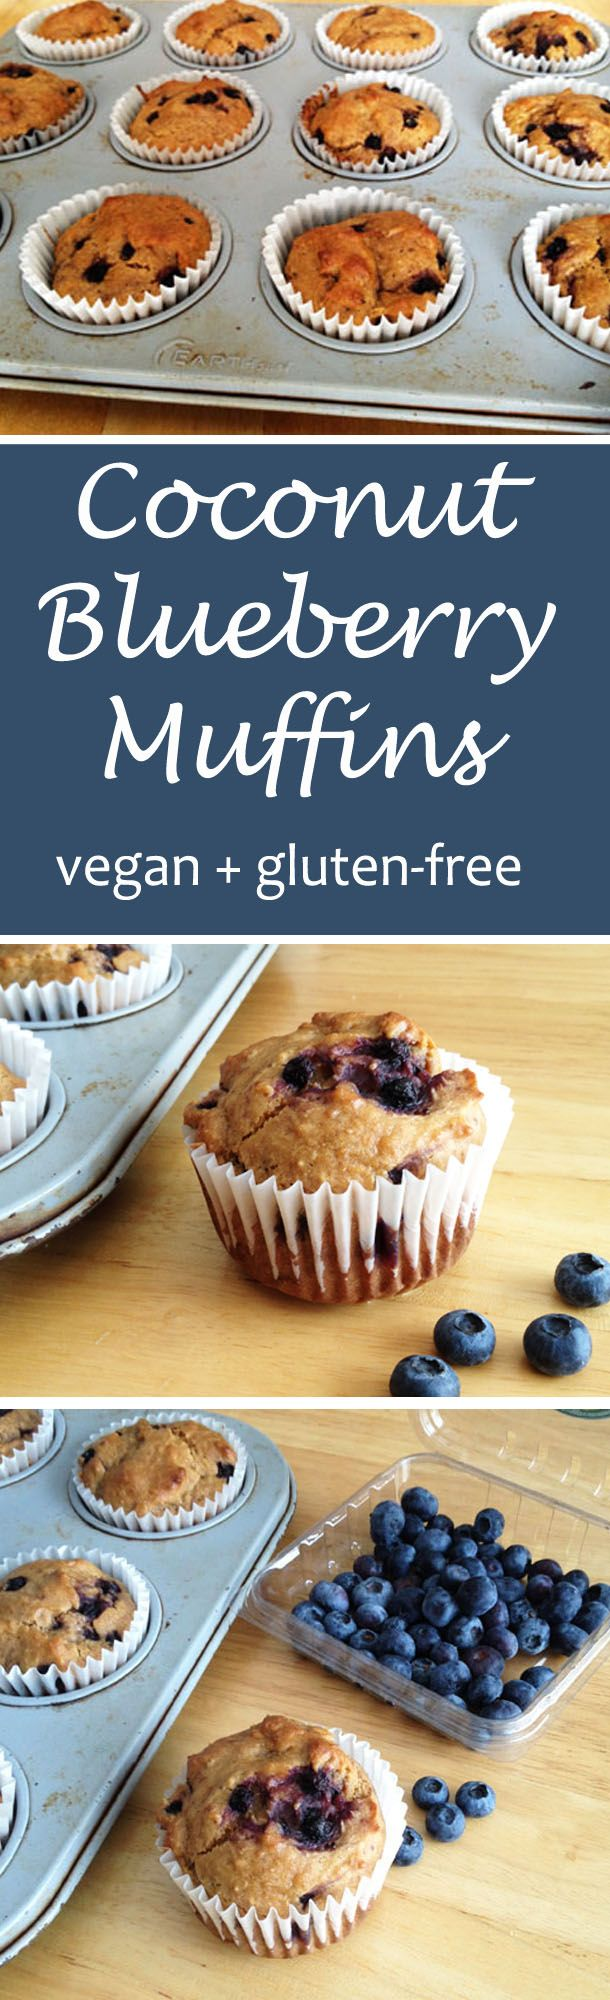 These vegan and gluten-free blueberry muffins with a hint of coconut are a delicious way to start your day!